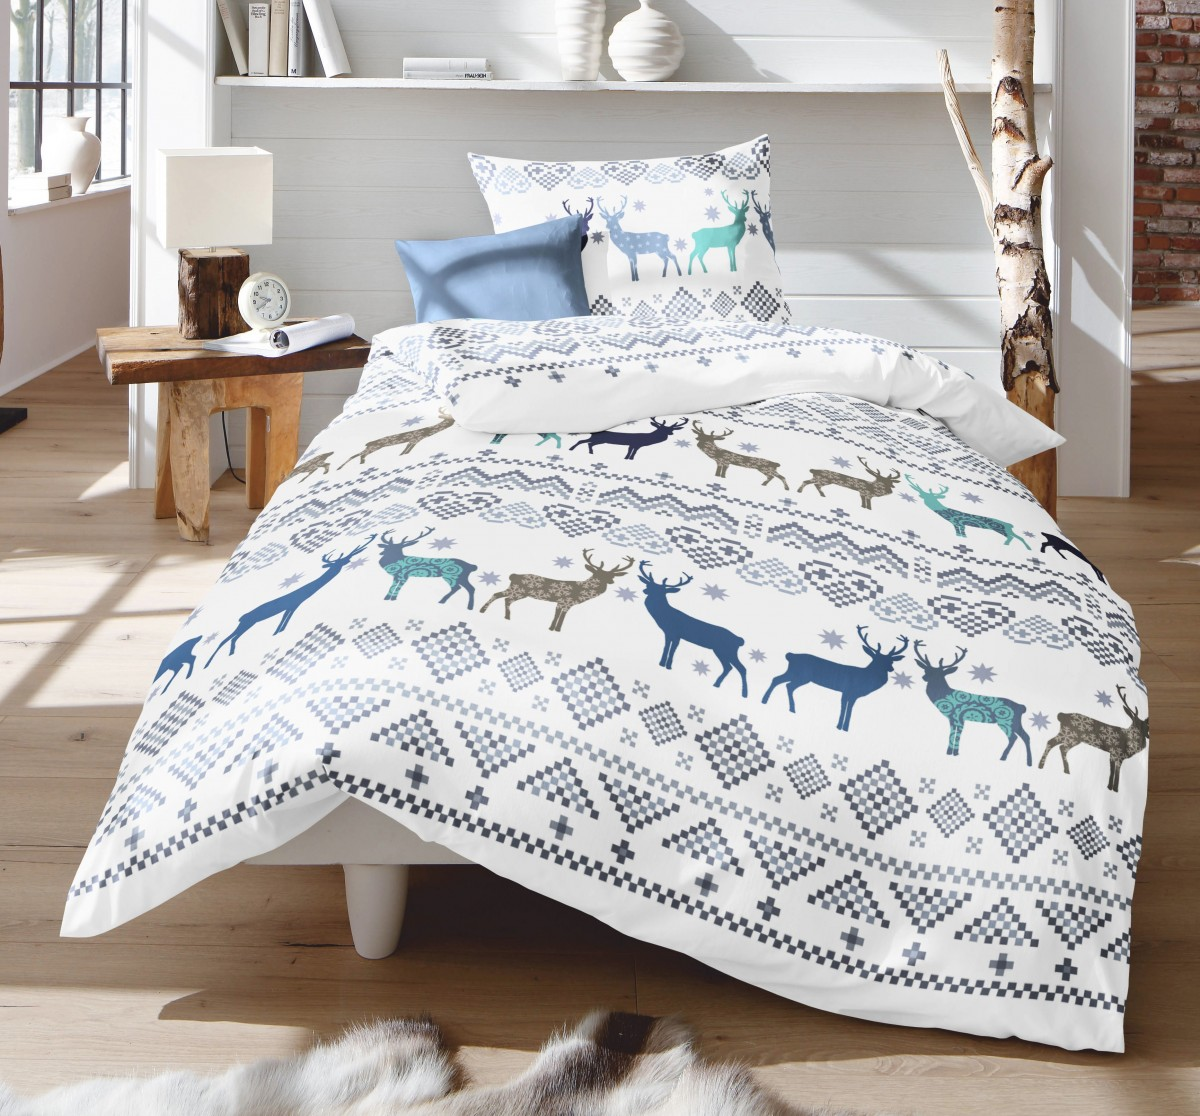 fleuresse fein biber bettw sche 2 tlg winter hirsche blau braun gr n wei bettw sche bettw sche. Black Bedroom Furniture Sets. Home Design Ideas